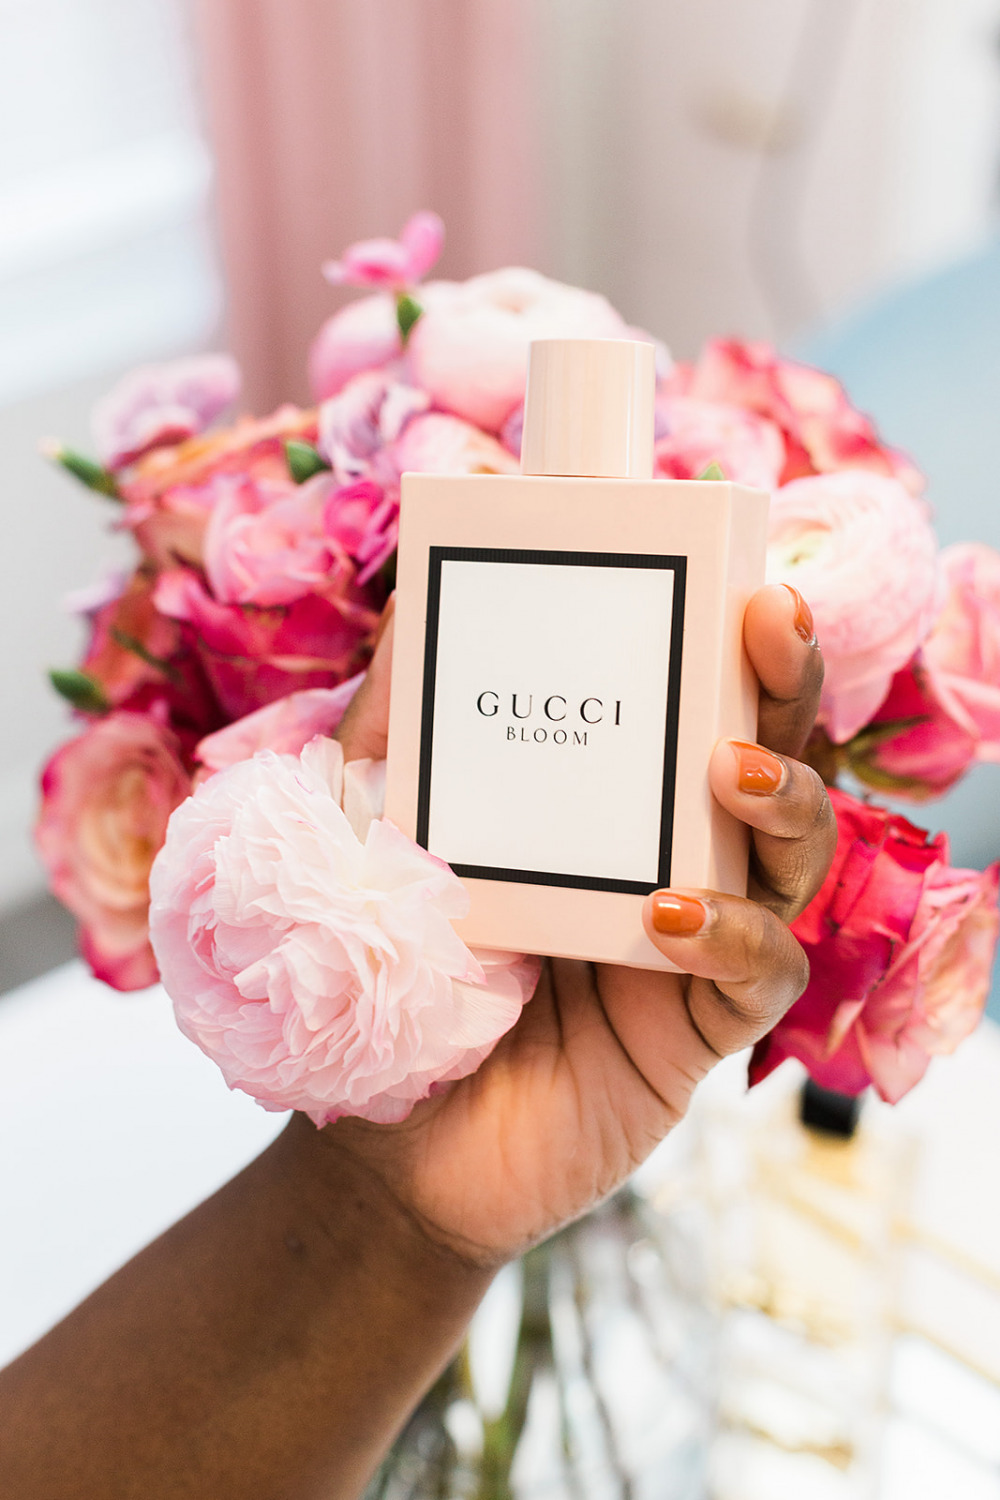 Gucci Bloom Perfume, Floral Bouquet, Pink Peonies, Pink Ranunculus, Perfume collection